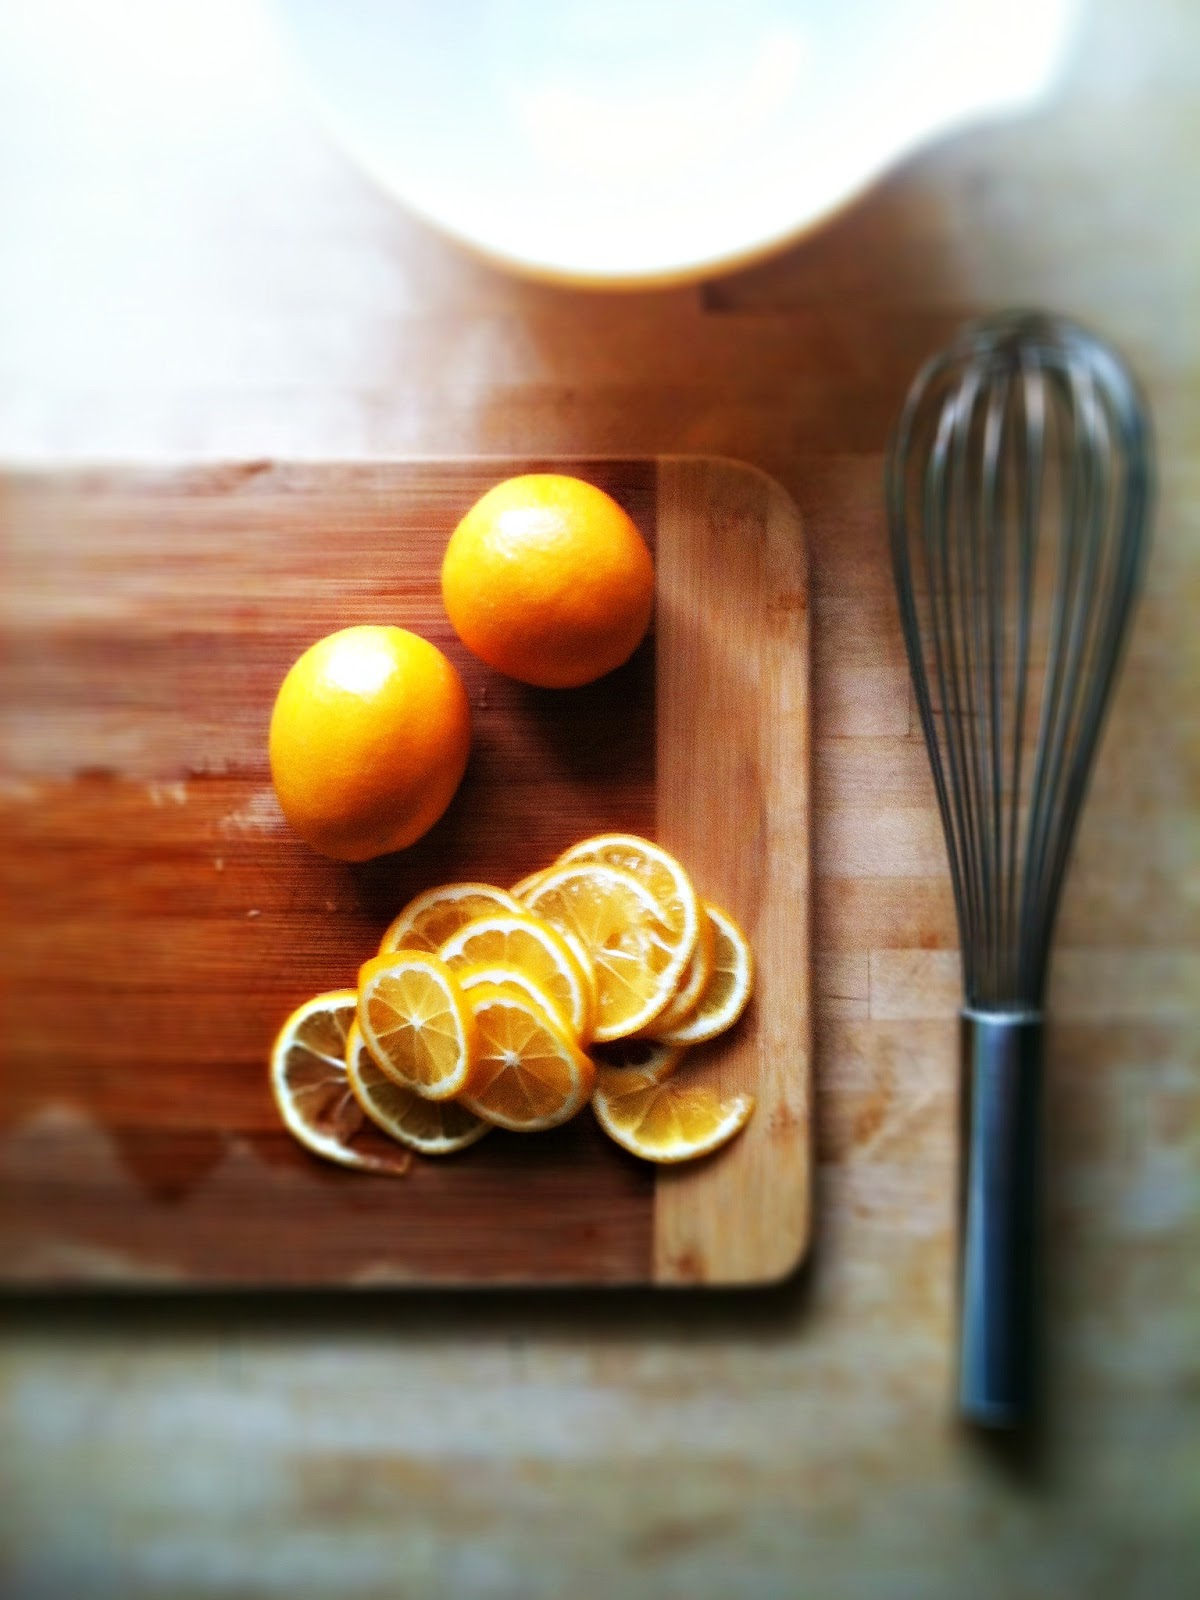 sweetsugarbean: Meyer Lemon Honey Tart with Salted ...